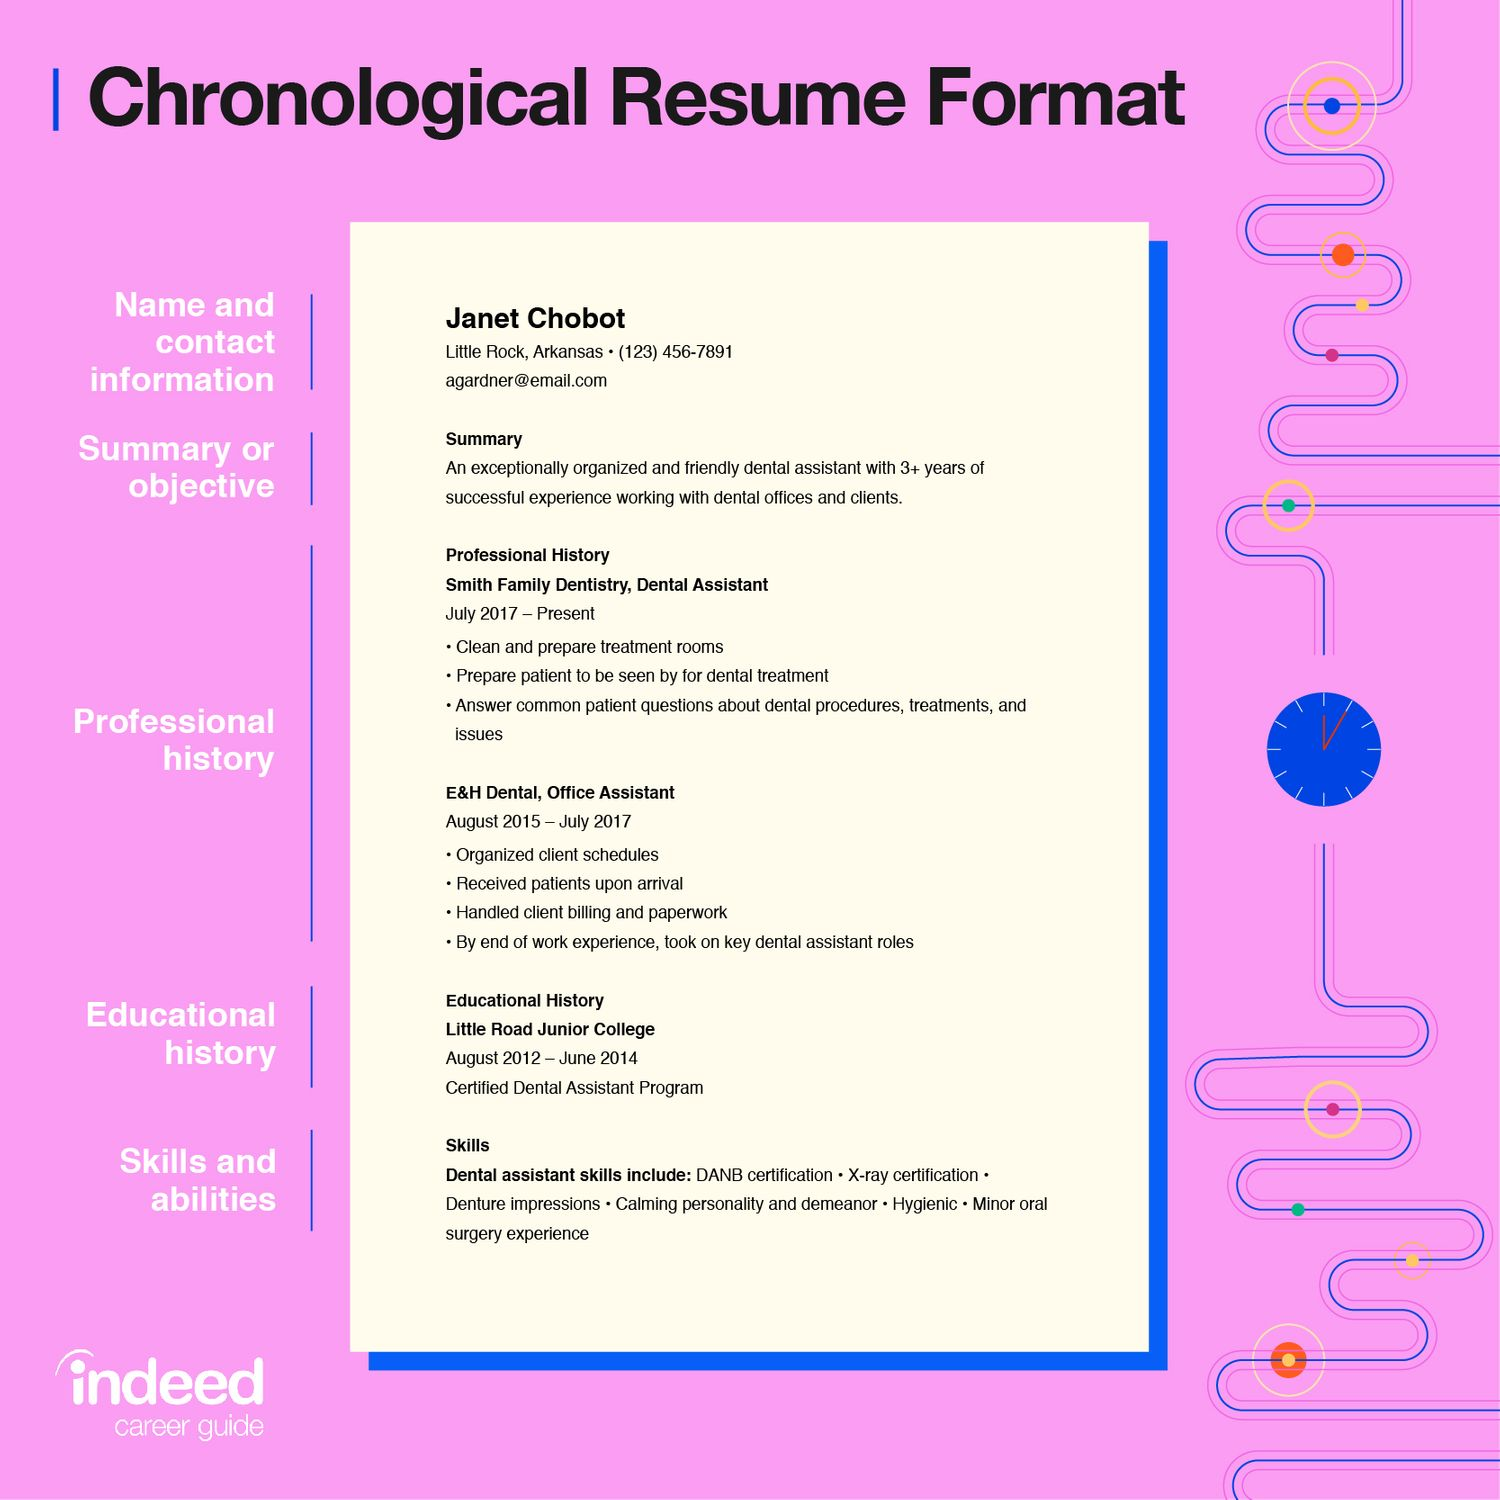 chronological resume tips and examples indeed best format for job interview resized Resume Best Resume Format For Job Interview